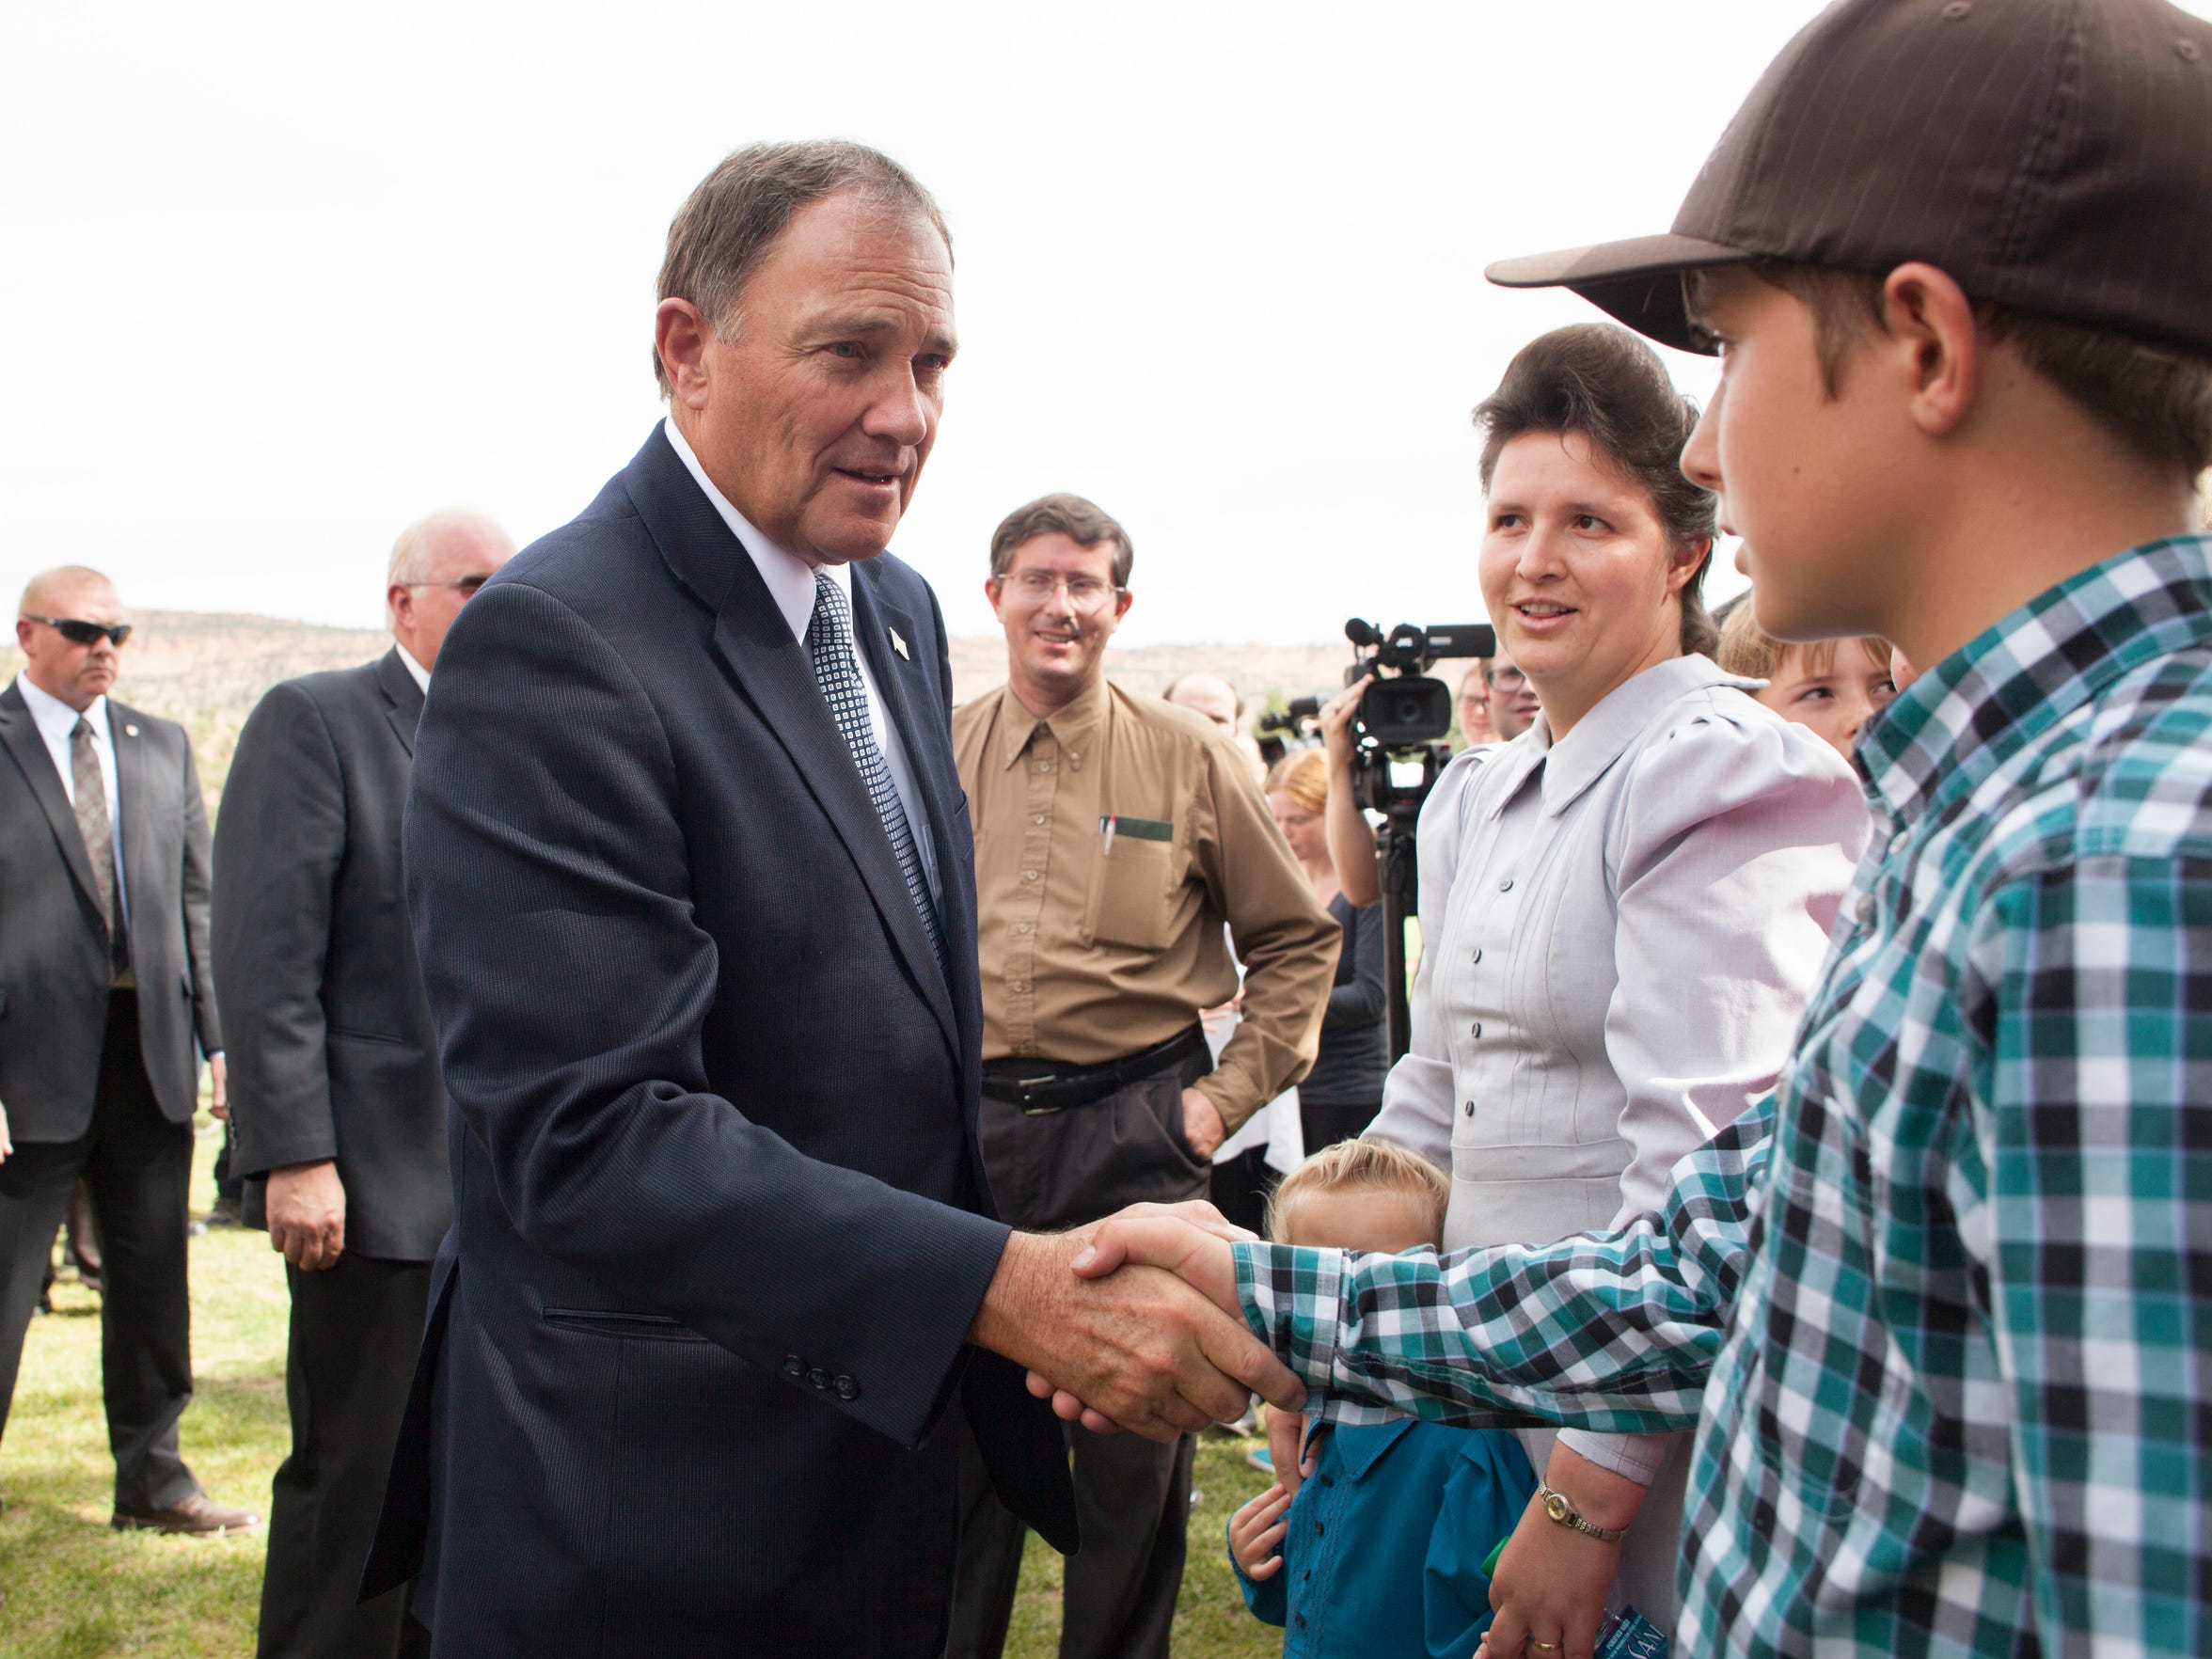 Utah Gov. Gary Herbert meets with residents of the